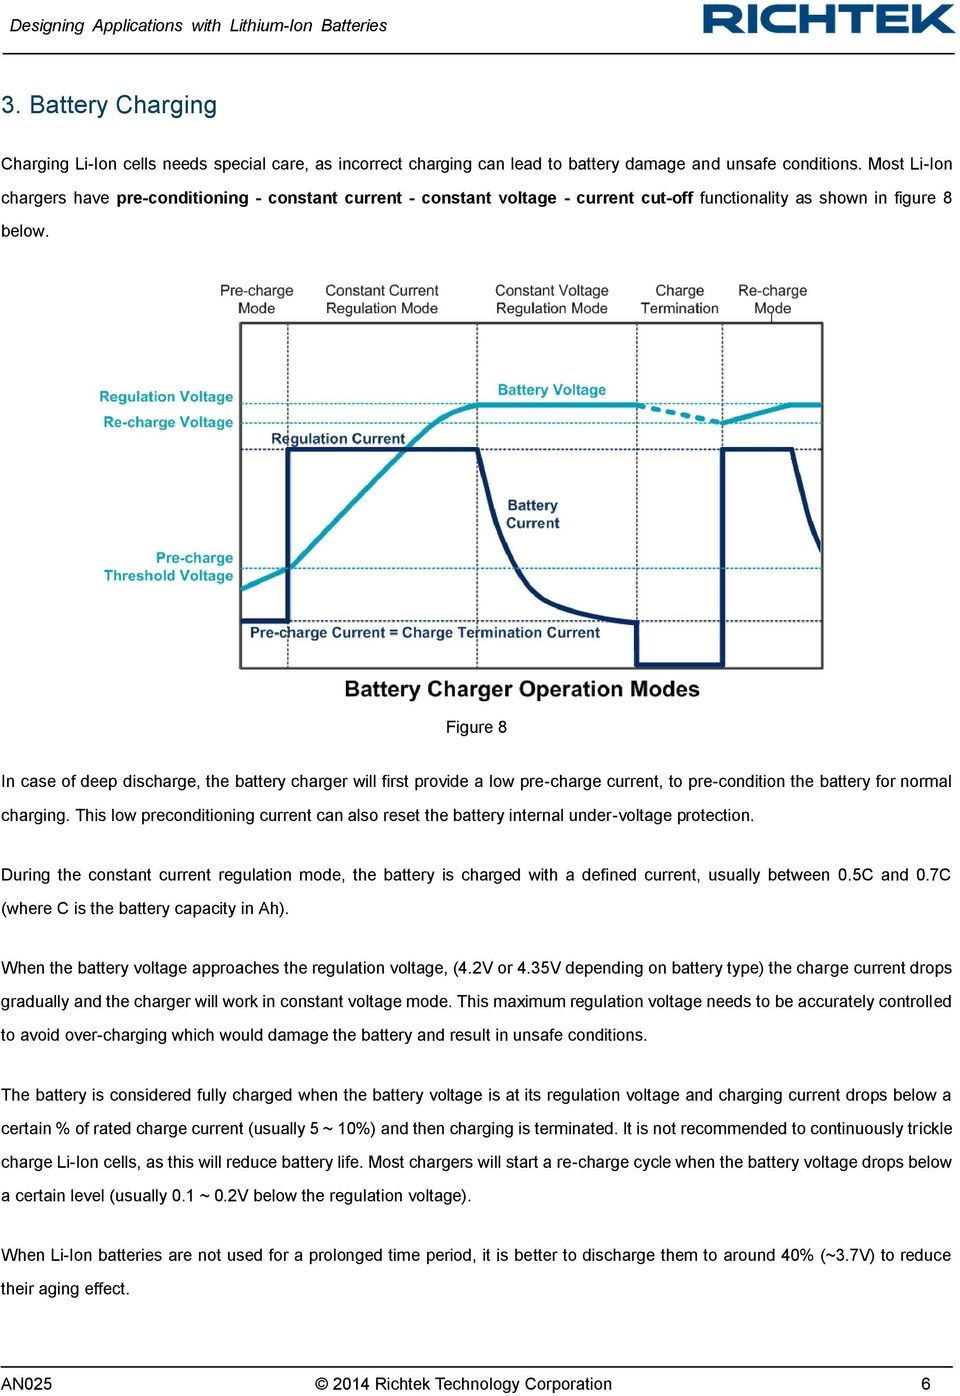 Designing Applications With Lithium Ion Batteries Pdf Circuits For The Battery Charger Of Fig 1 Alkaline Figure 8 In Case Deep Discharge Will First Provide A Low